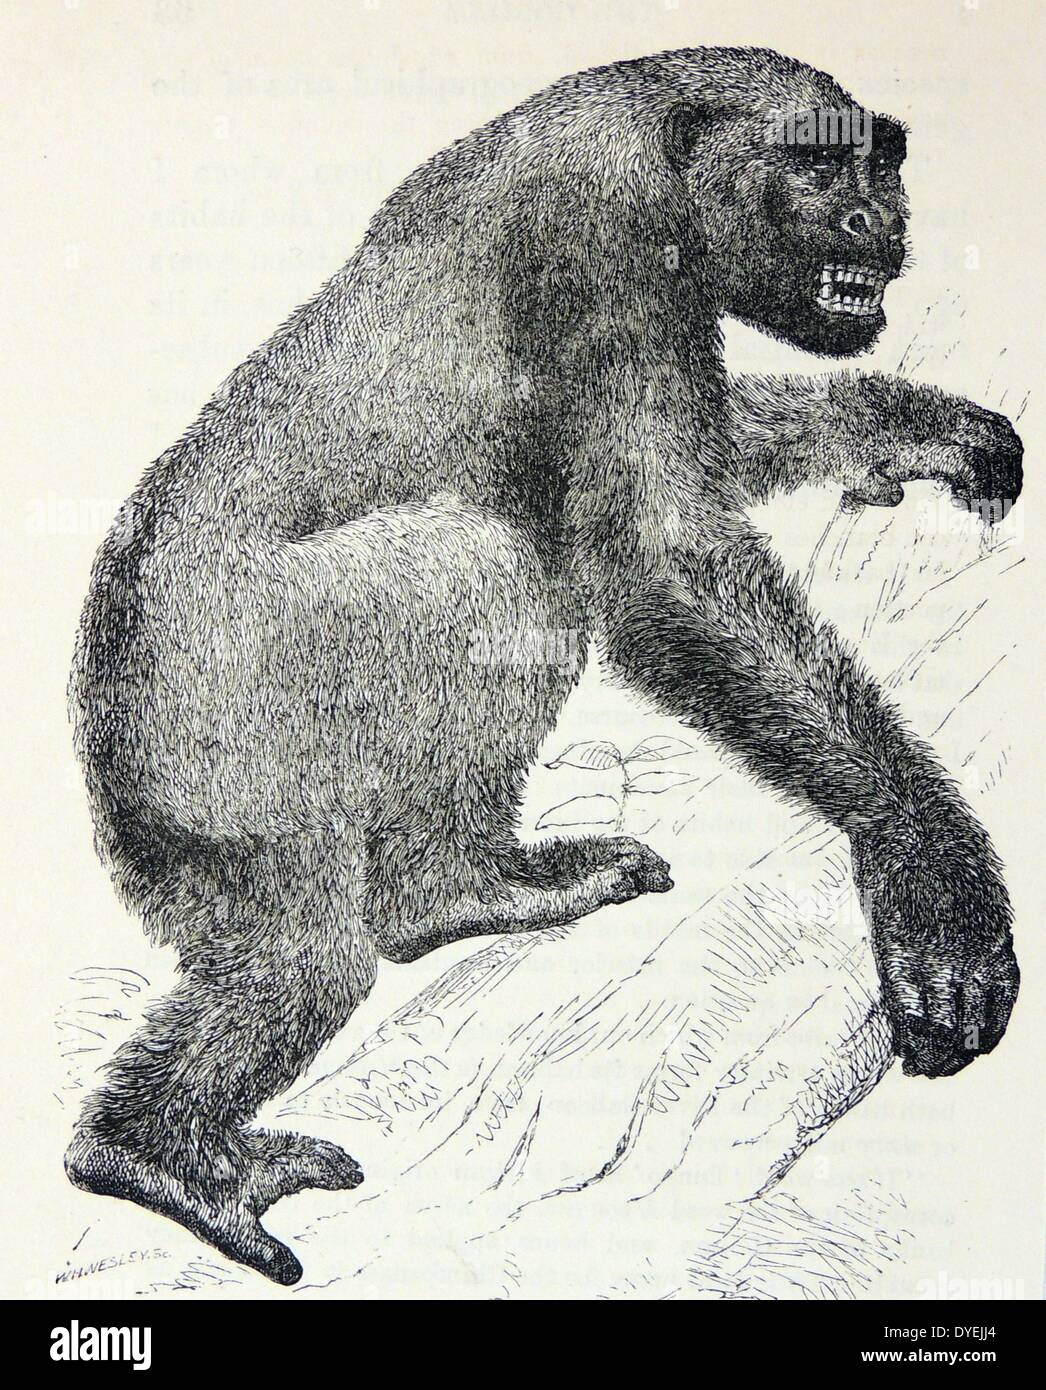 The Gorilla, after Wolf.  From ''Man's Place in Nature'', London, 1894, by Thomas Henry Huxley. - Stock Image